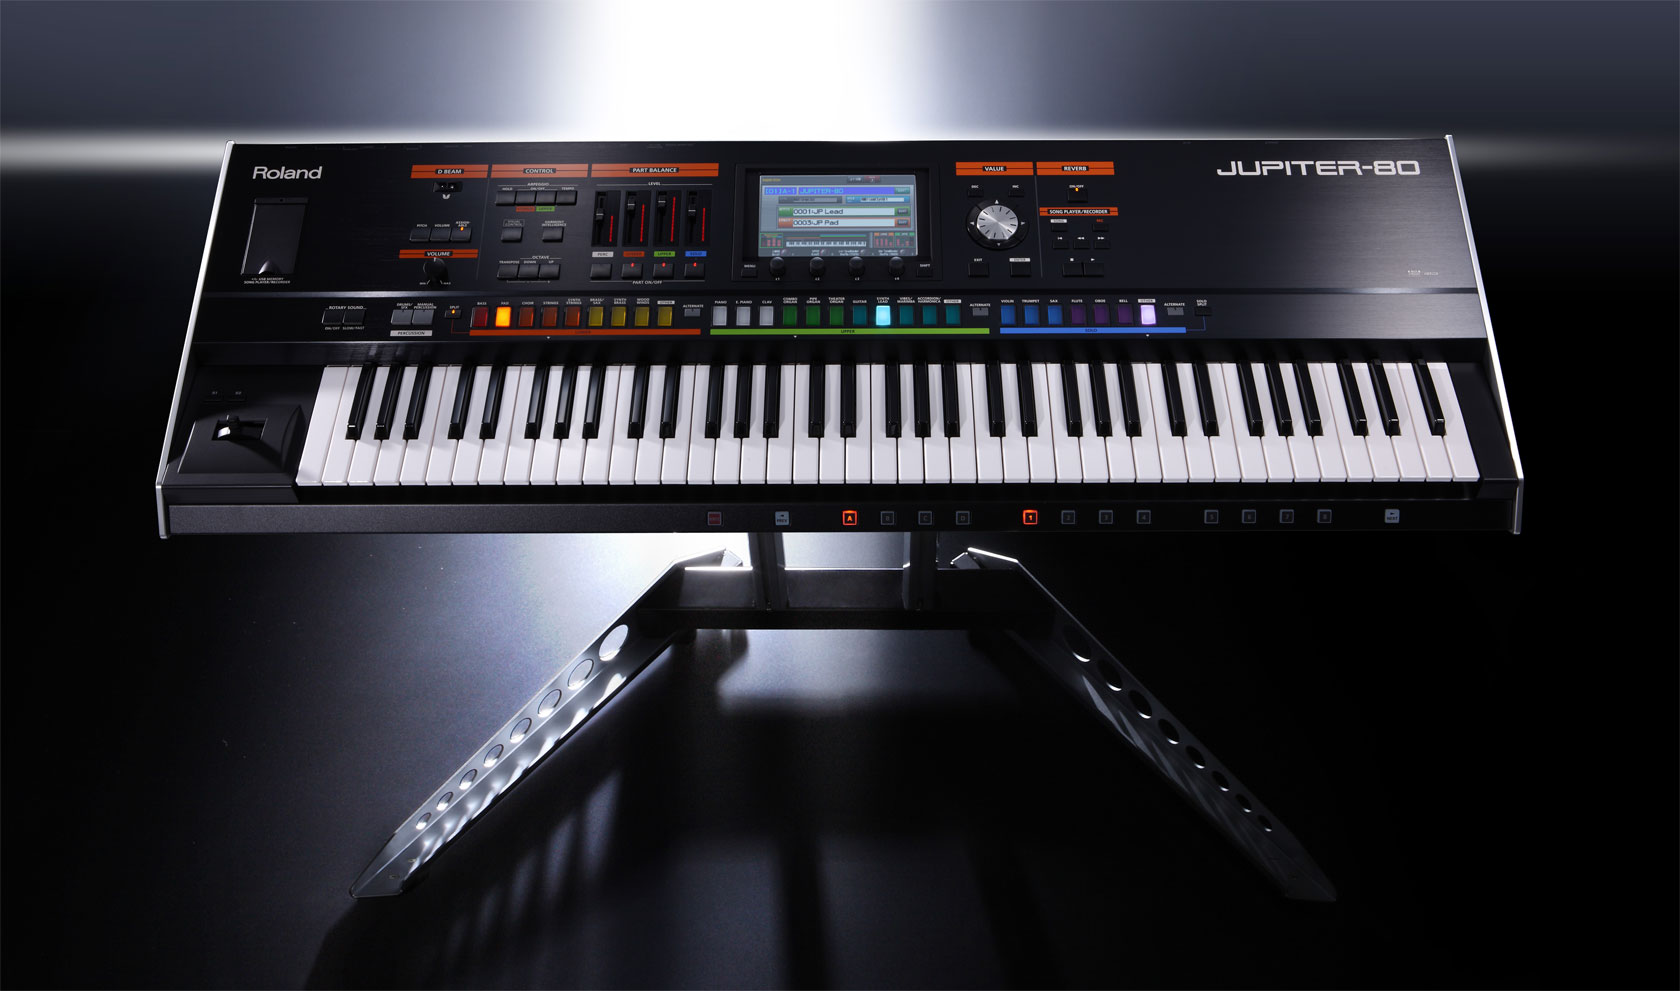 Roland - JUPITER-80 | Synthesizer